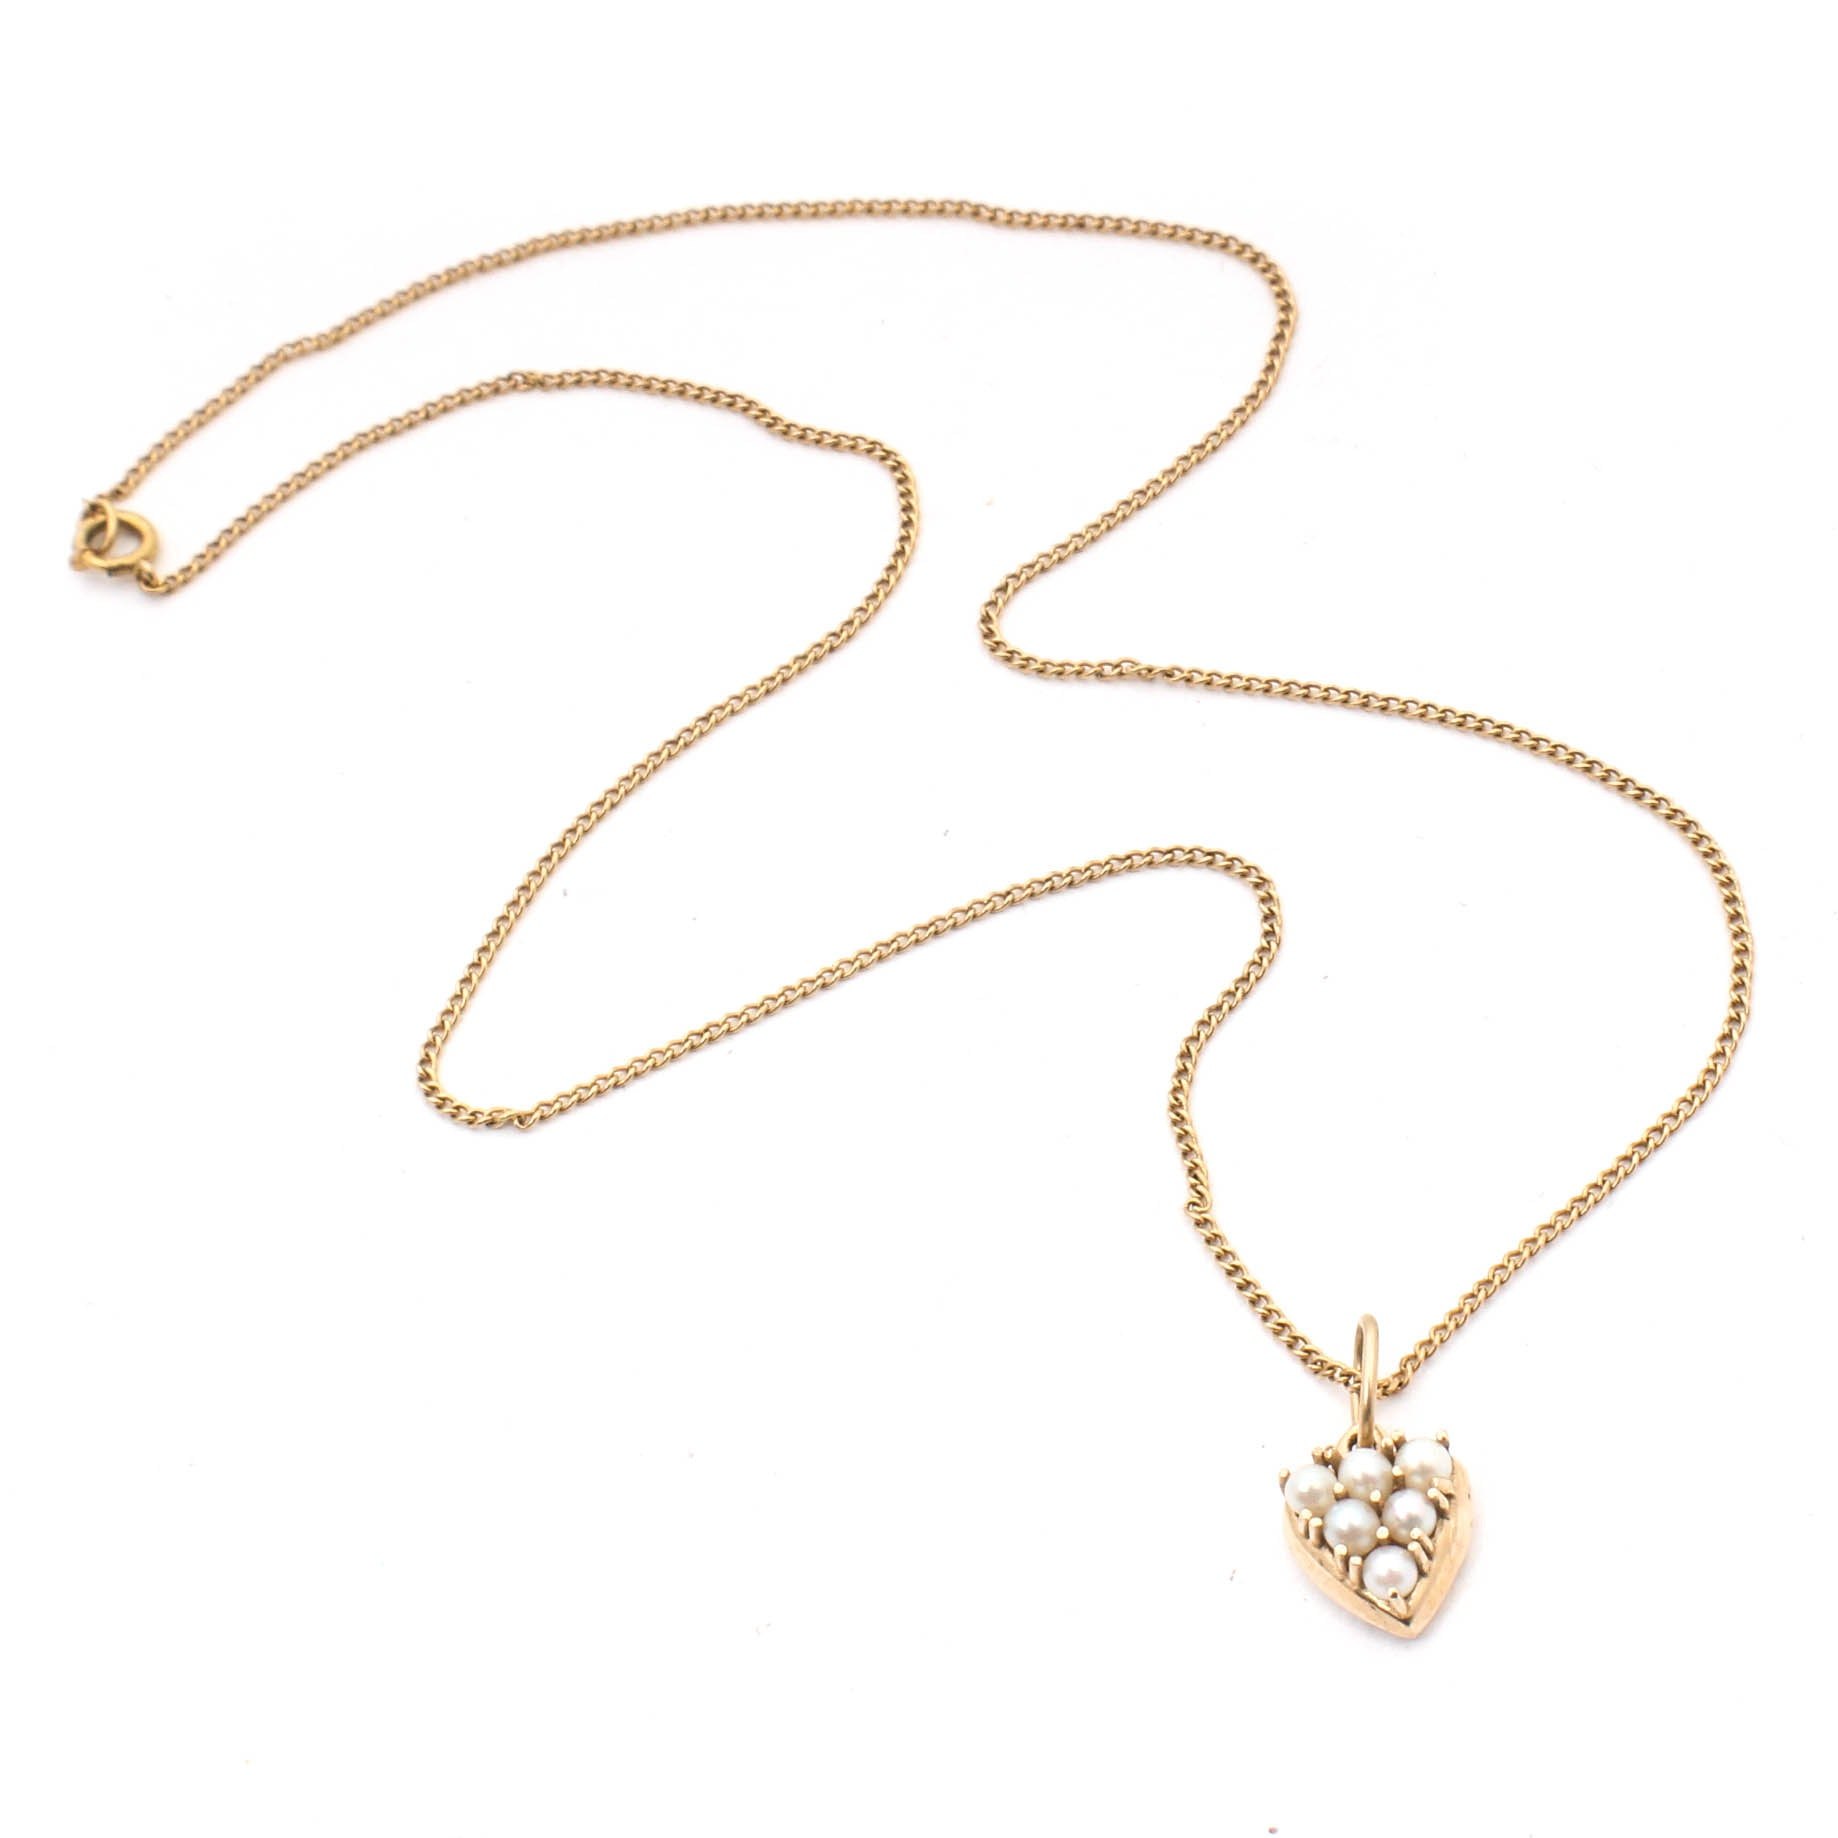 10K Yellow Gold Necklace with 14K and Cultured Pearl Pendant